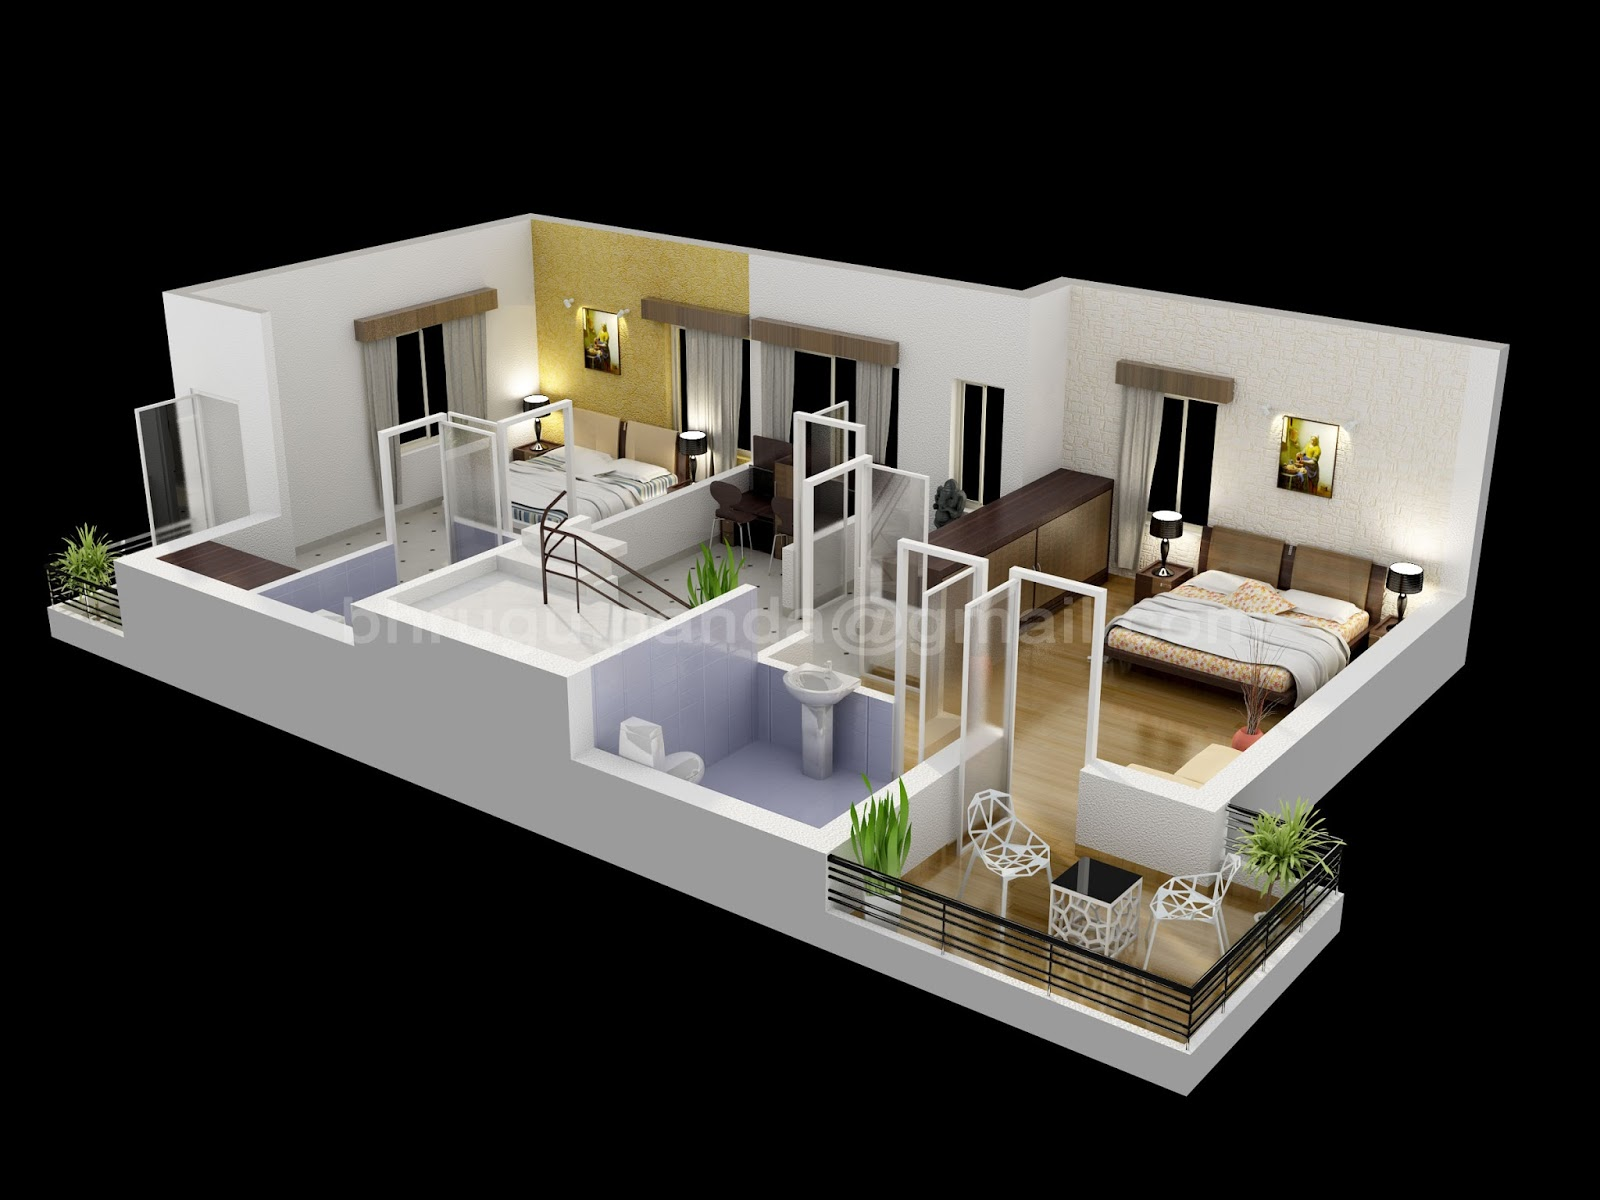 Floor plans 3d 3ds max vray for In plan 3d